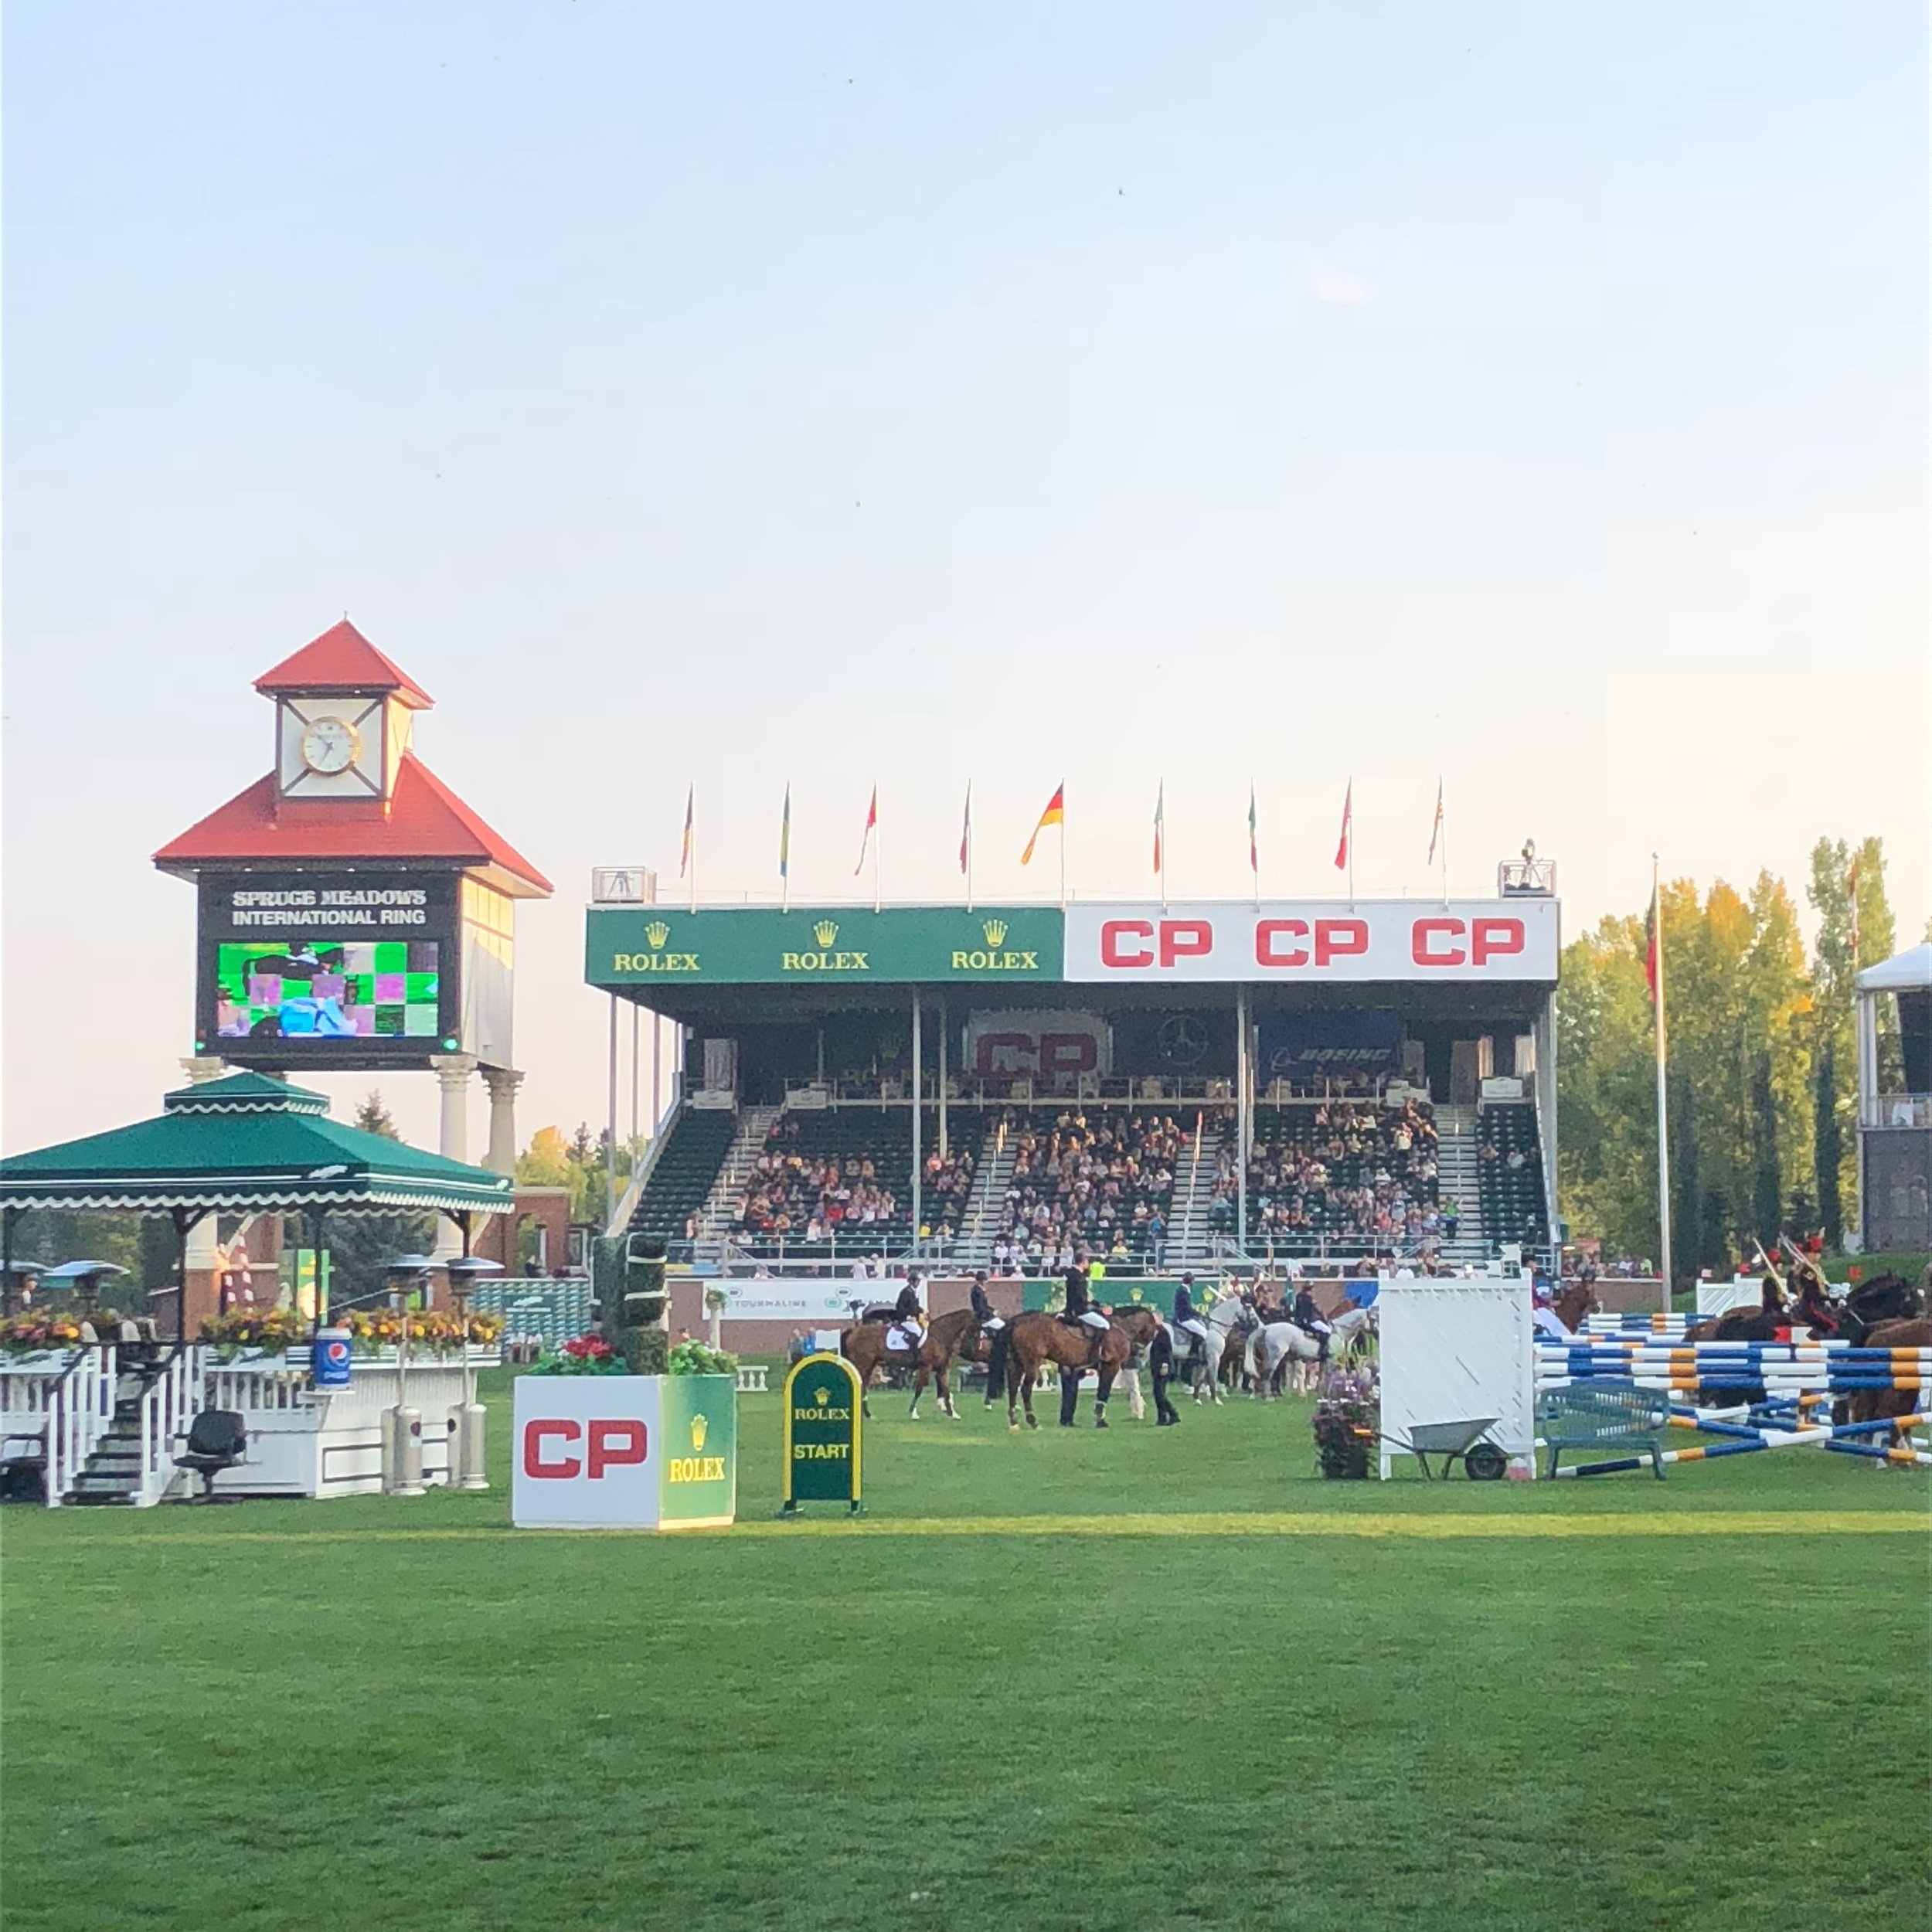 Lead up to the 6-bar jumping event at Spruce Meadows.